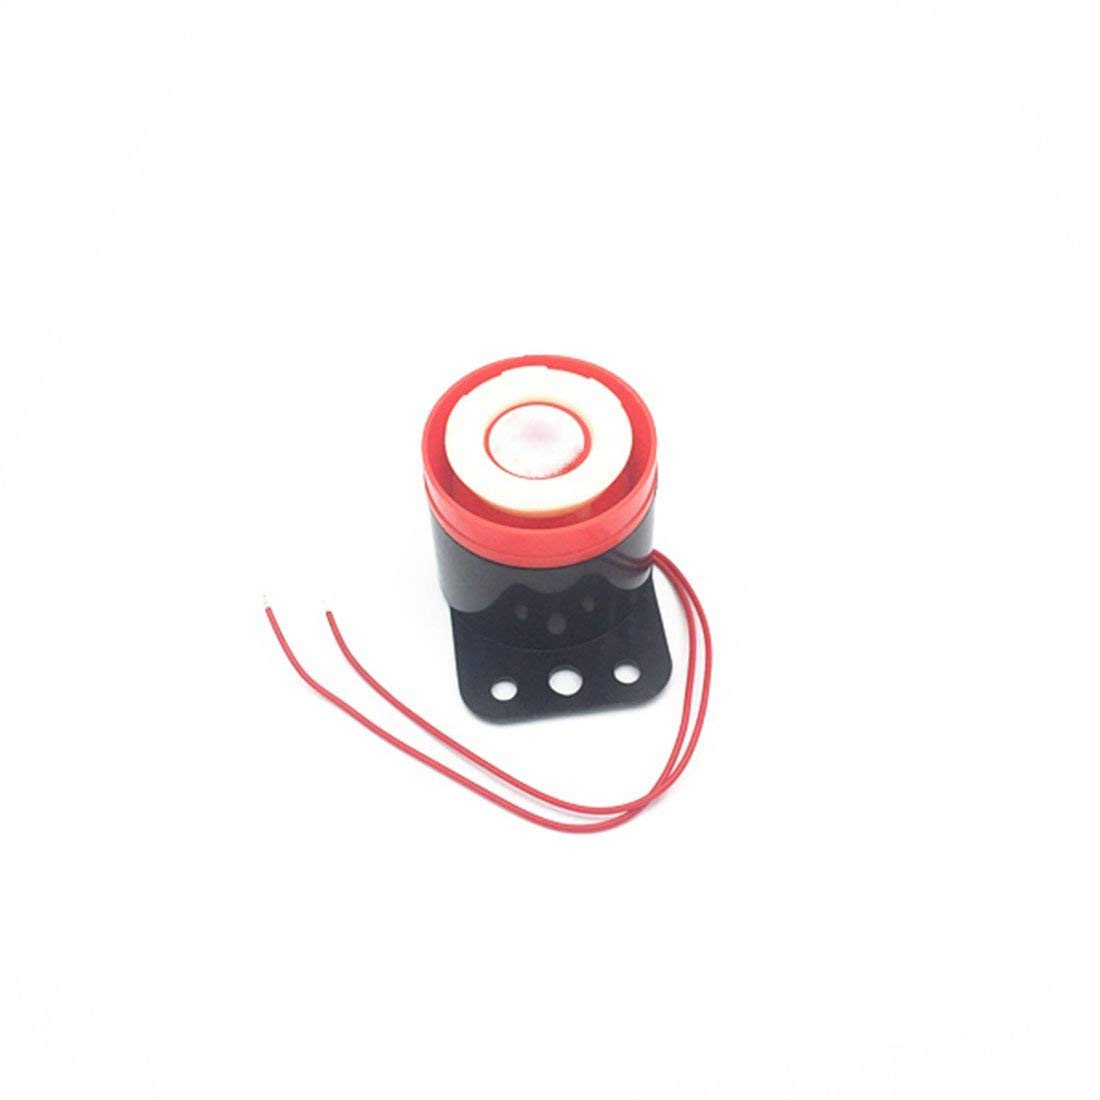 Cheap Alarm Buzzer Mp3, find Alarm Buzzer Mp3 deals on line at